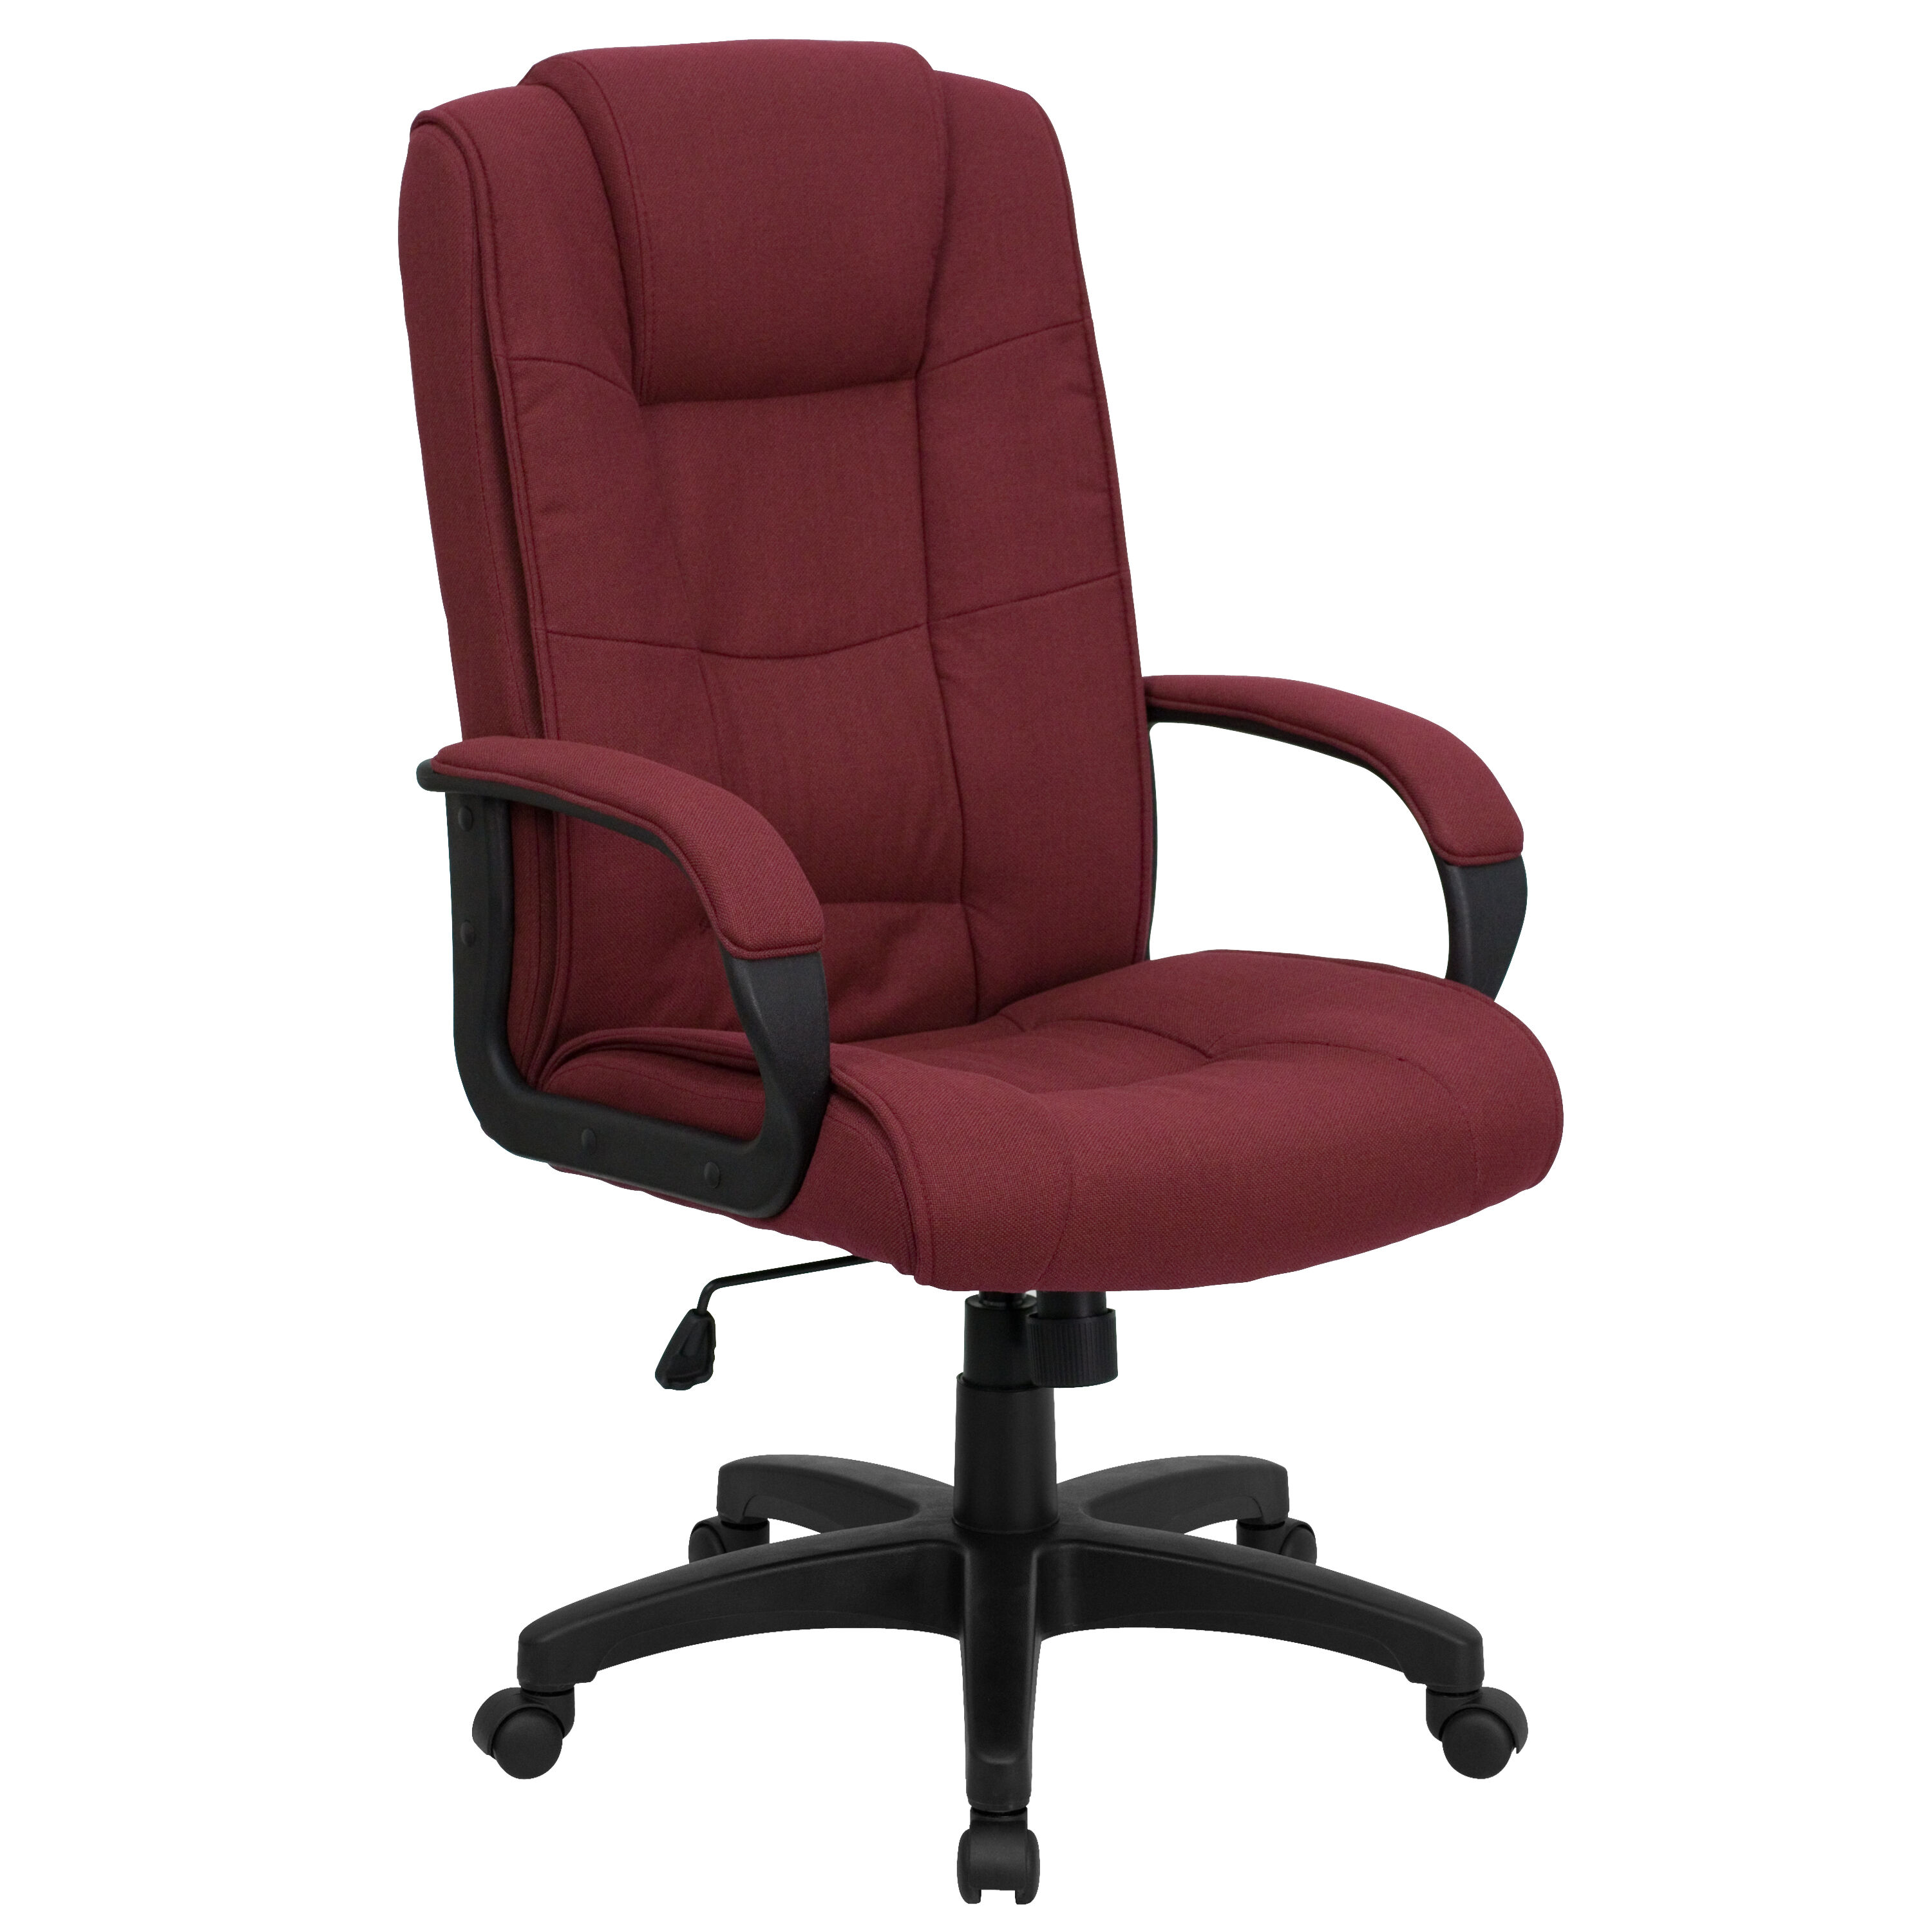 ... Our High Back Burgundy Fabric Executive Swivel Chair With Arms Is On  Sale Now.